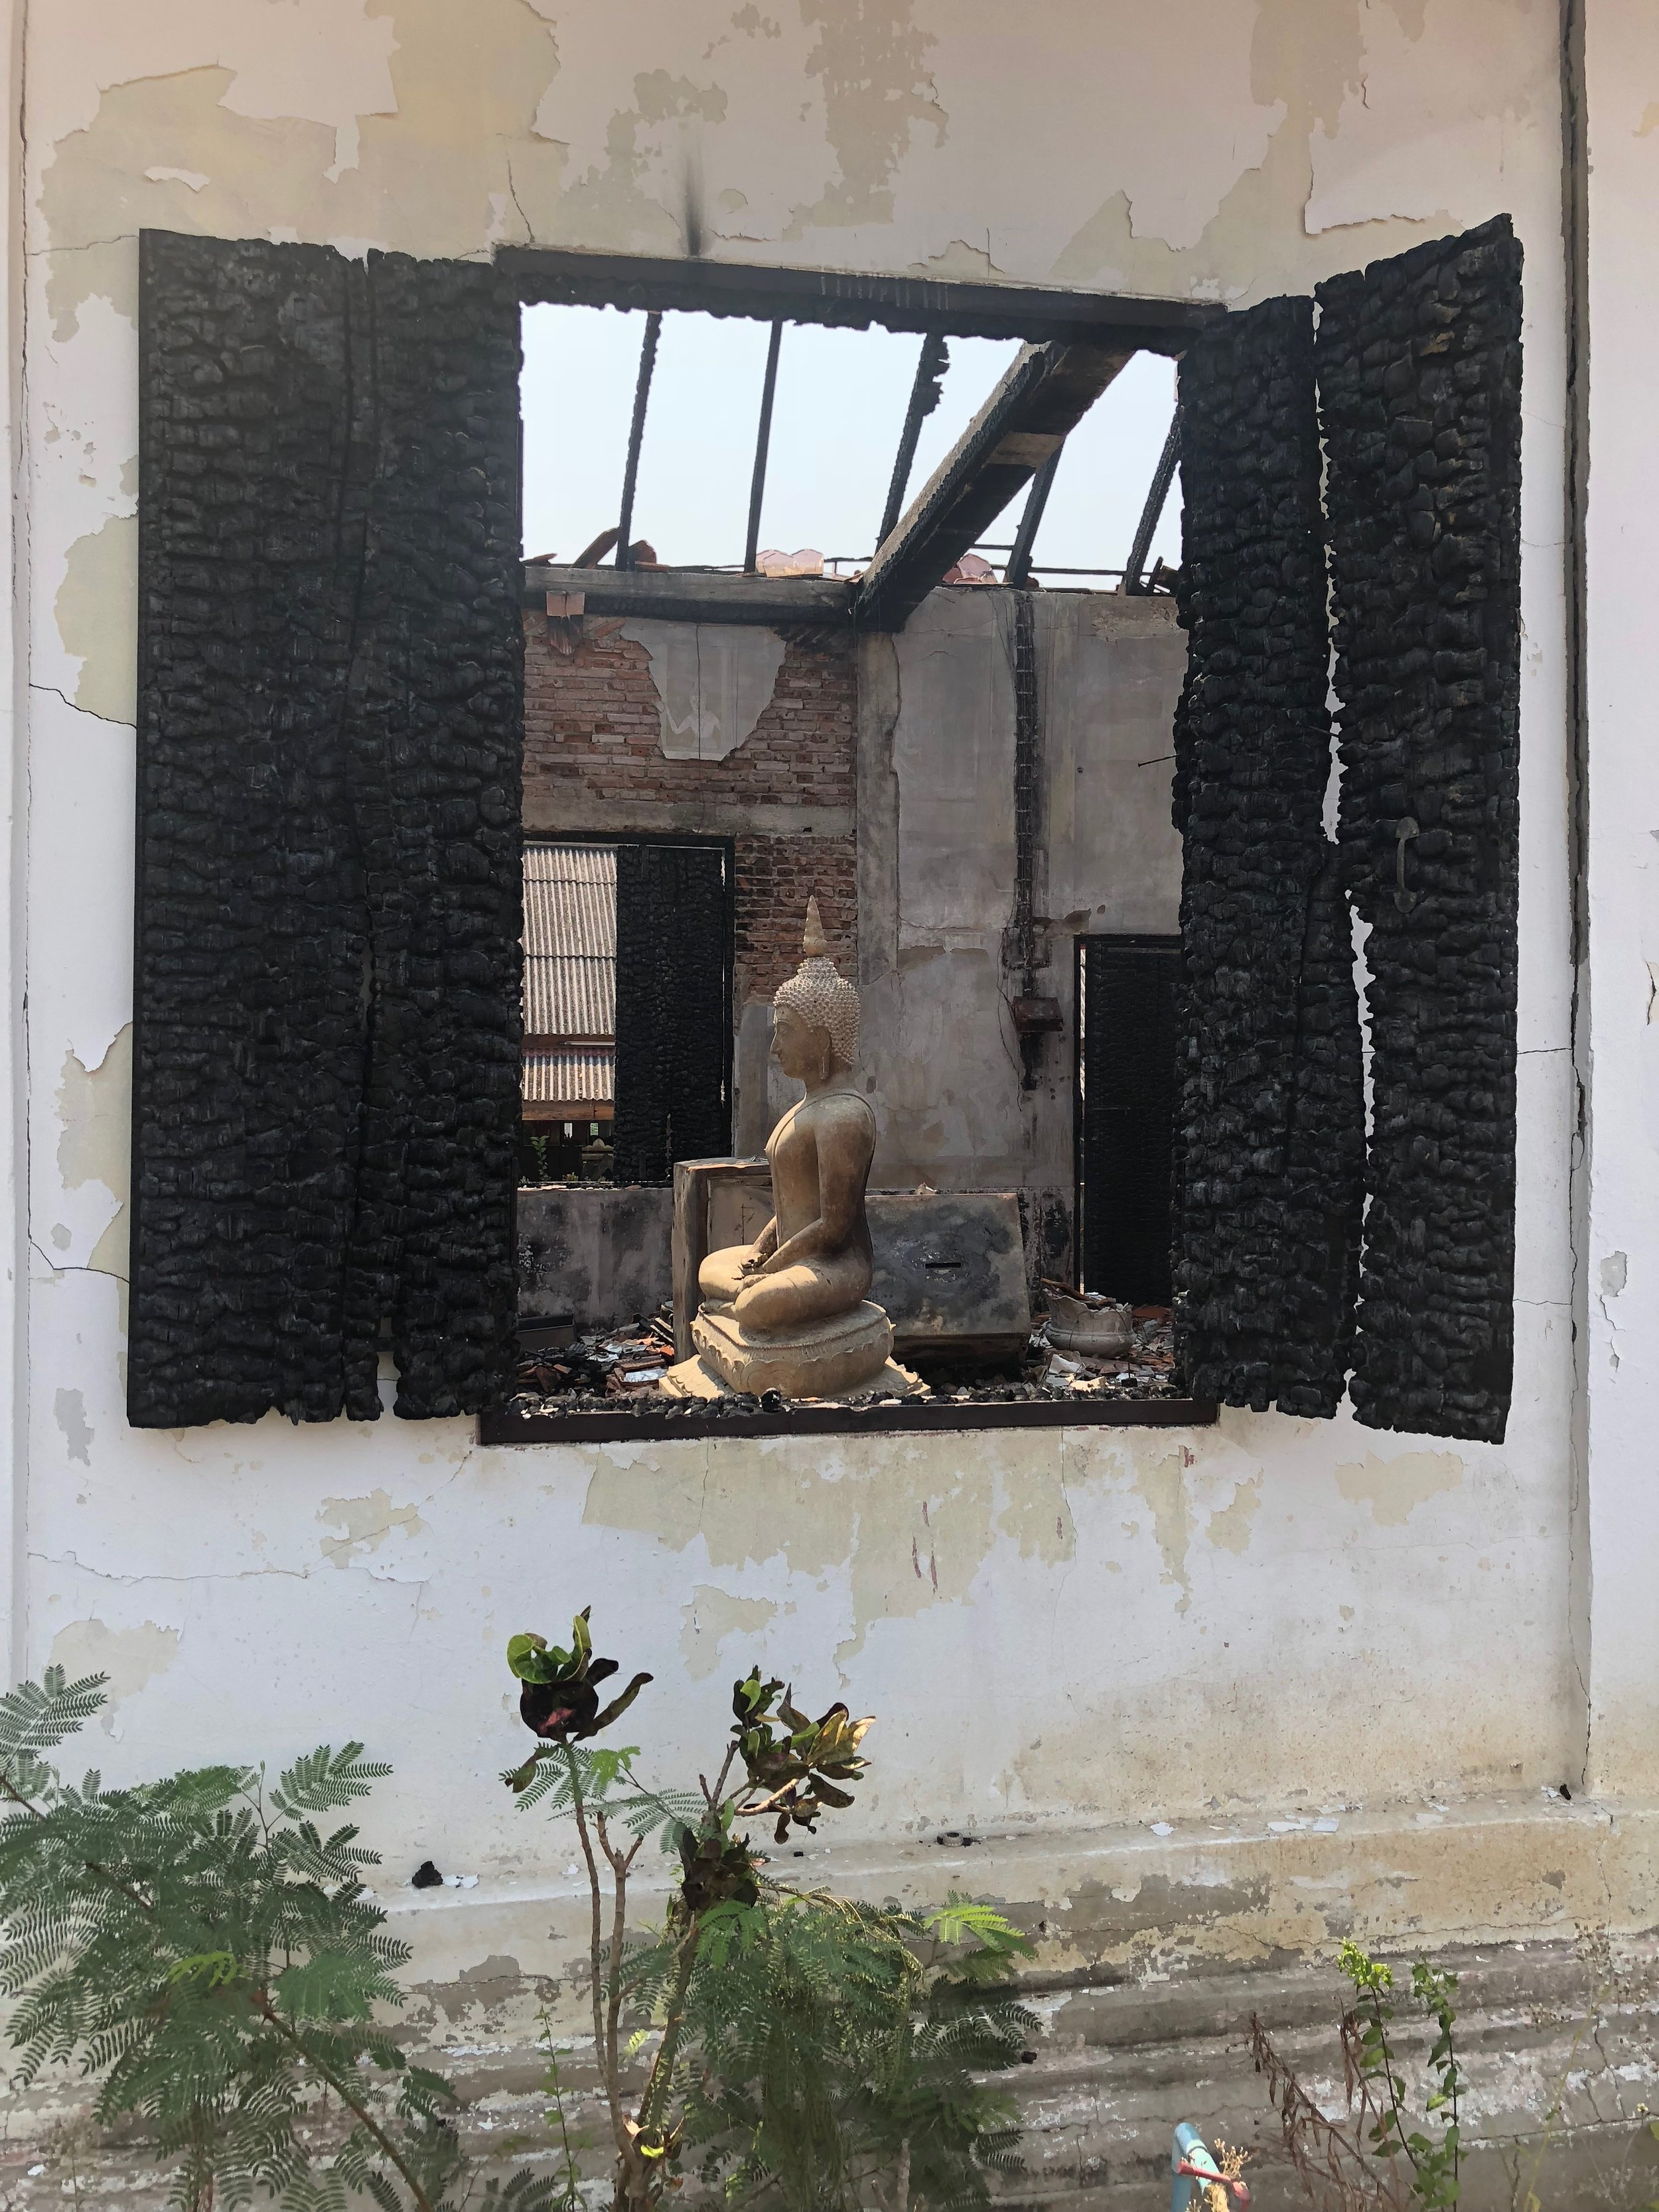 Sometimes looking through the destruction reveals the beauty